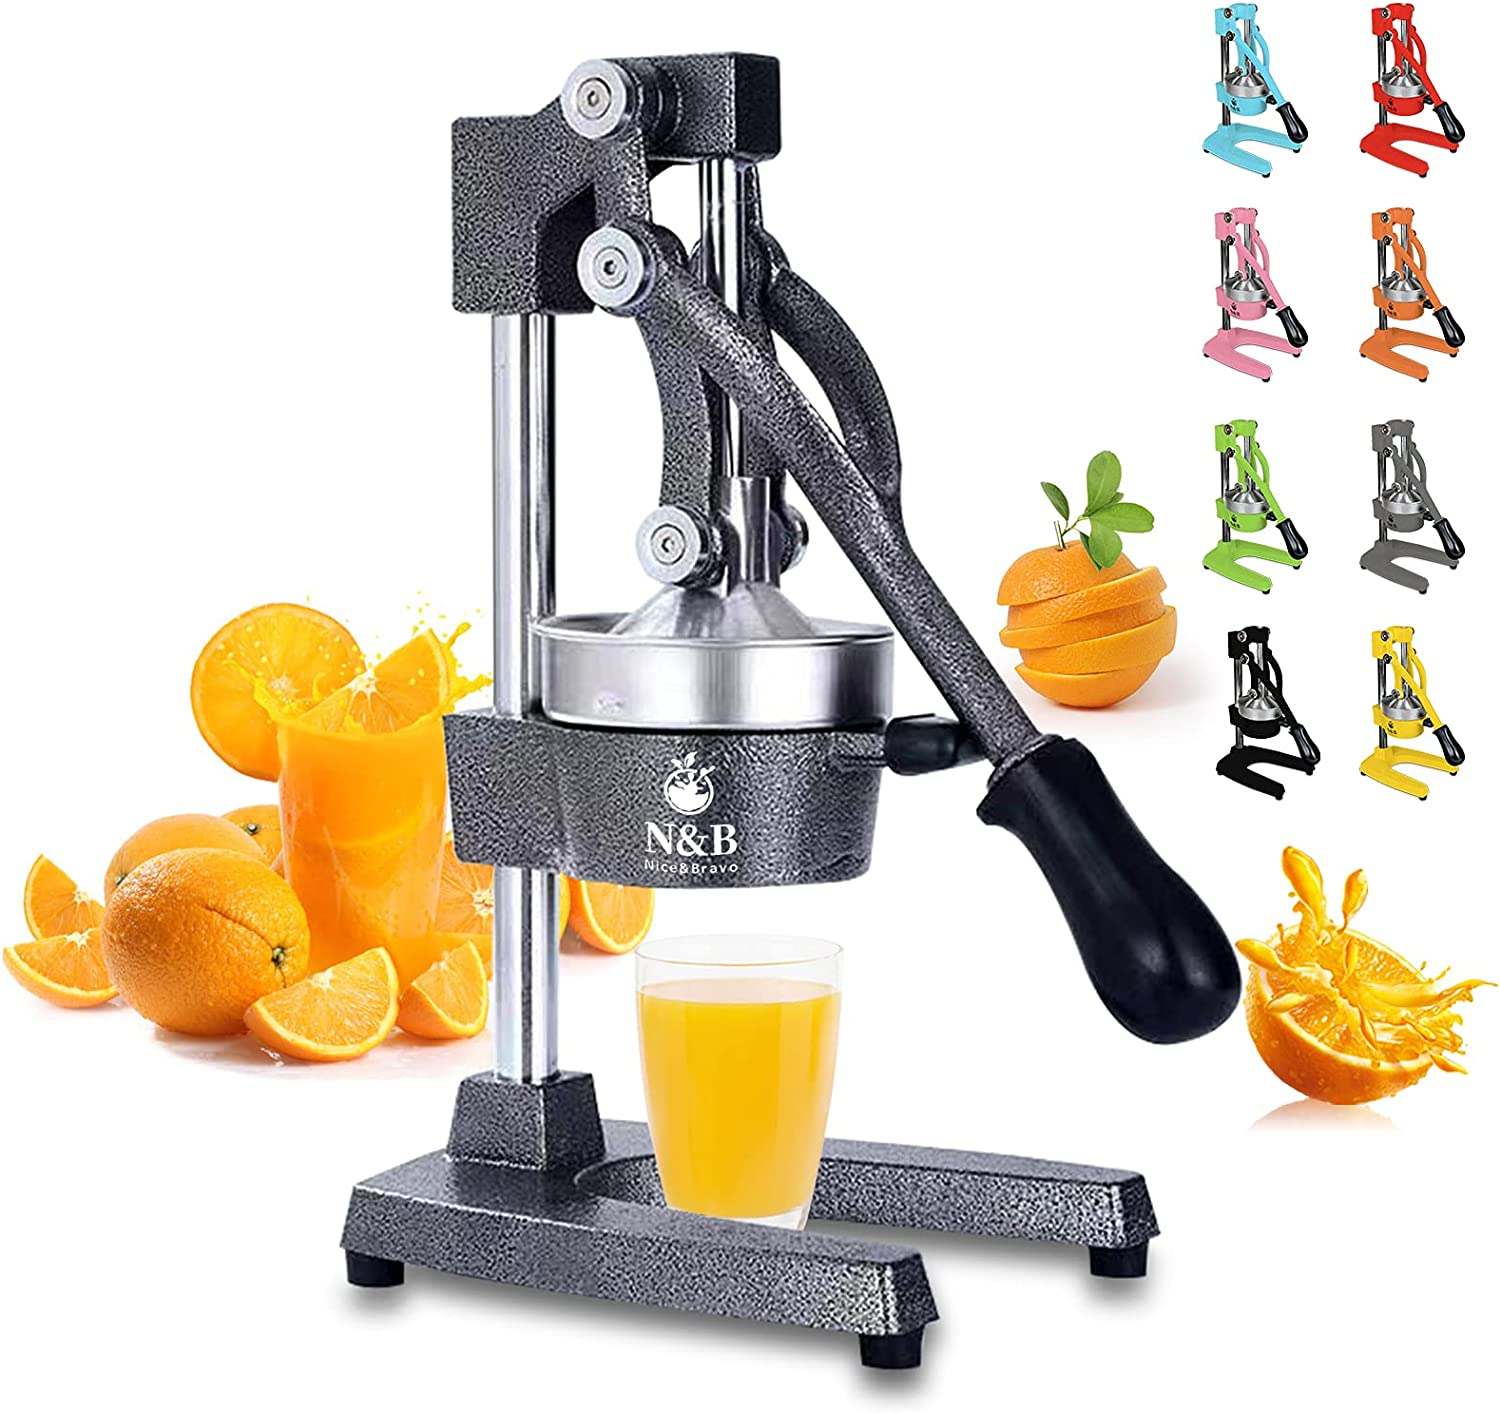 Professional Max 85% OFF Commercial Grade Recommended Hand Juicer Citrus Manual Or Press